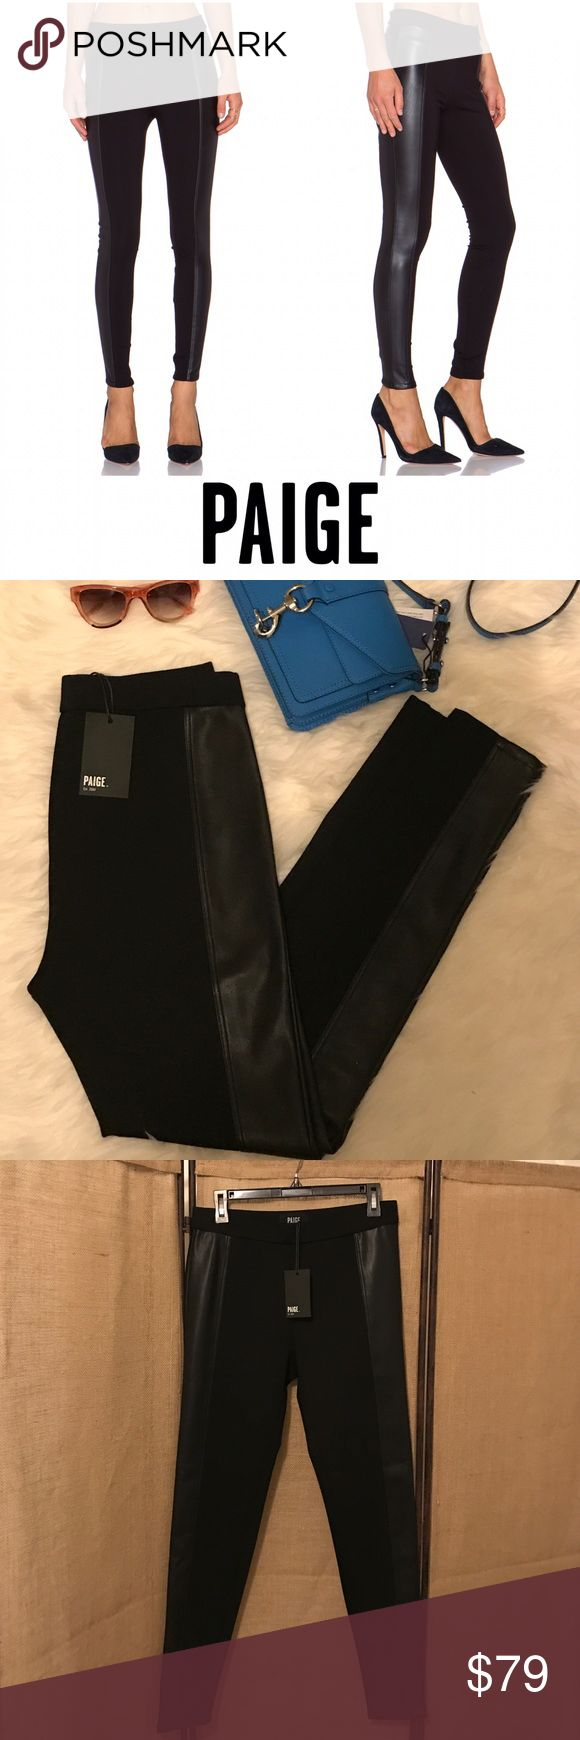 NWT Paige Tuesday Pant This pair of leggings are sooo cute!😍. They are a nice thick material as the base and on the sides of each leg have a wide stripe of vegan leather. For someone like me🙋with not perfect legs, this gives you the leather legging look that is much more flattering and forgiving. 👏👏👏 Paige Jeans Pants Leggings